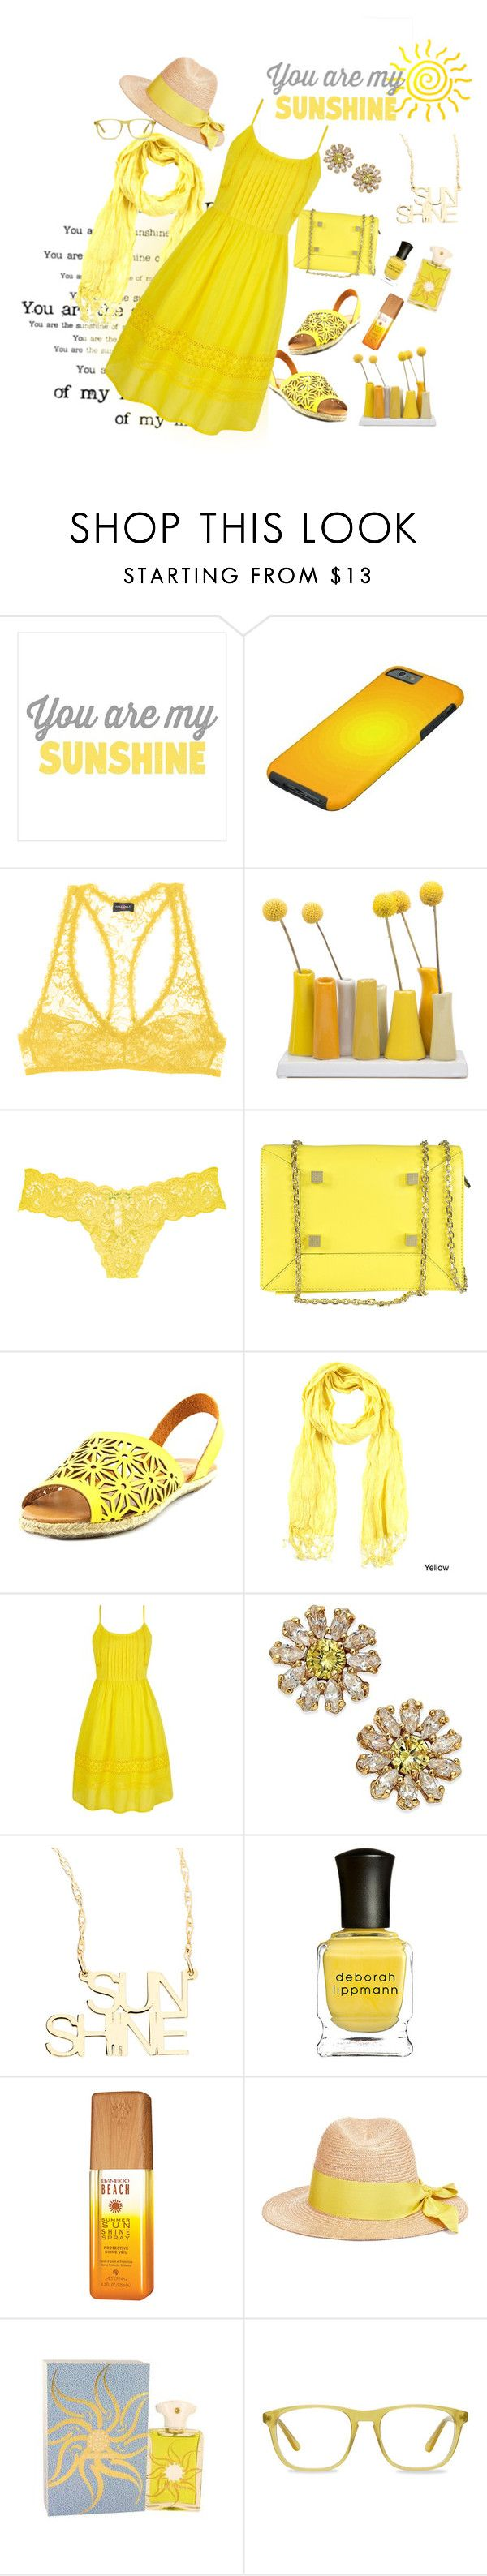 """""""You are my Sunshine"""" by christy-leigh-1 ❤ liked on Polyvore featuring Cosabella, Dot & Bo, Manurina, Cape Robbin, Le Nom, Yumi, Kate Spade, Jennifer Zeuner, Deborah Lippmann and Alterna"""